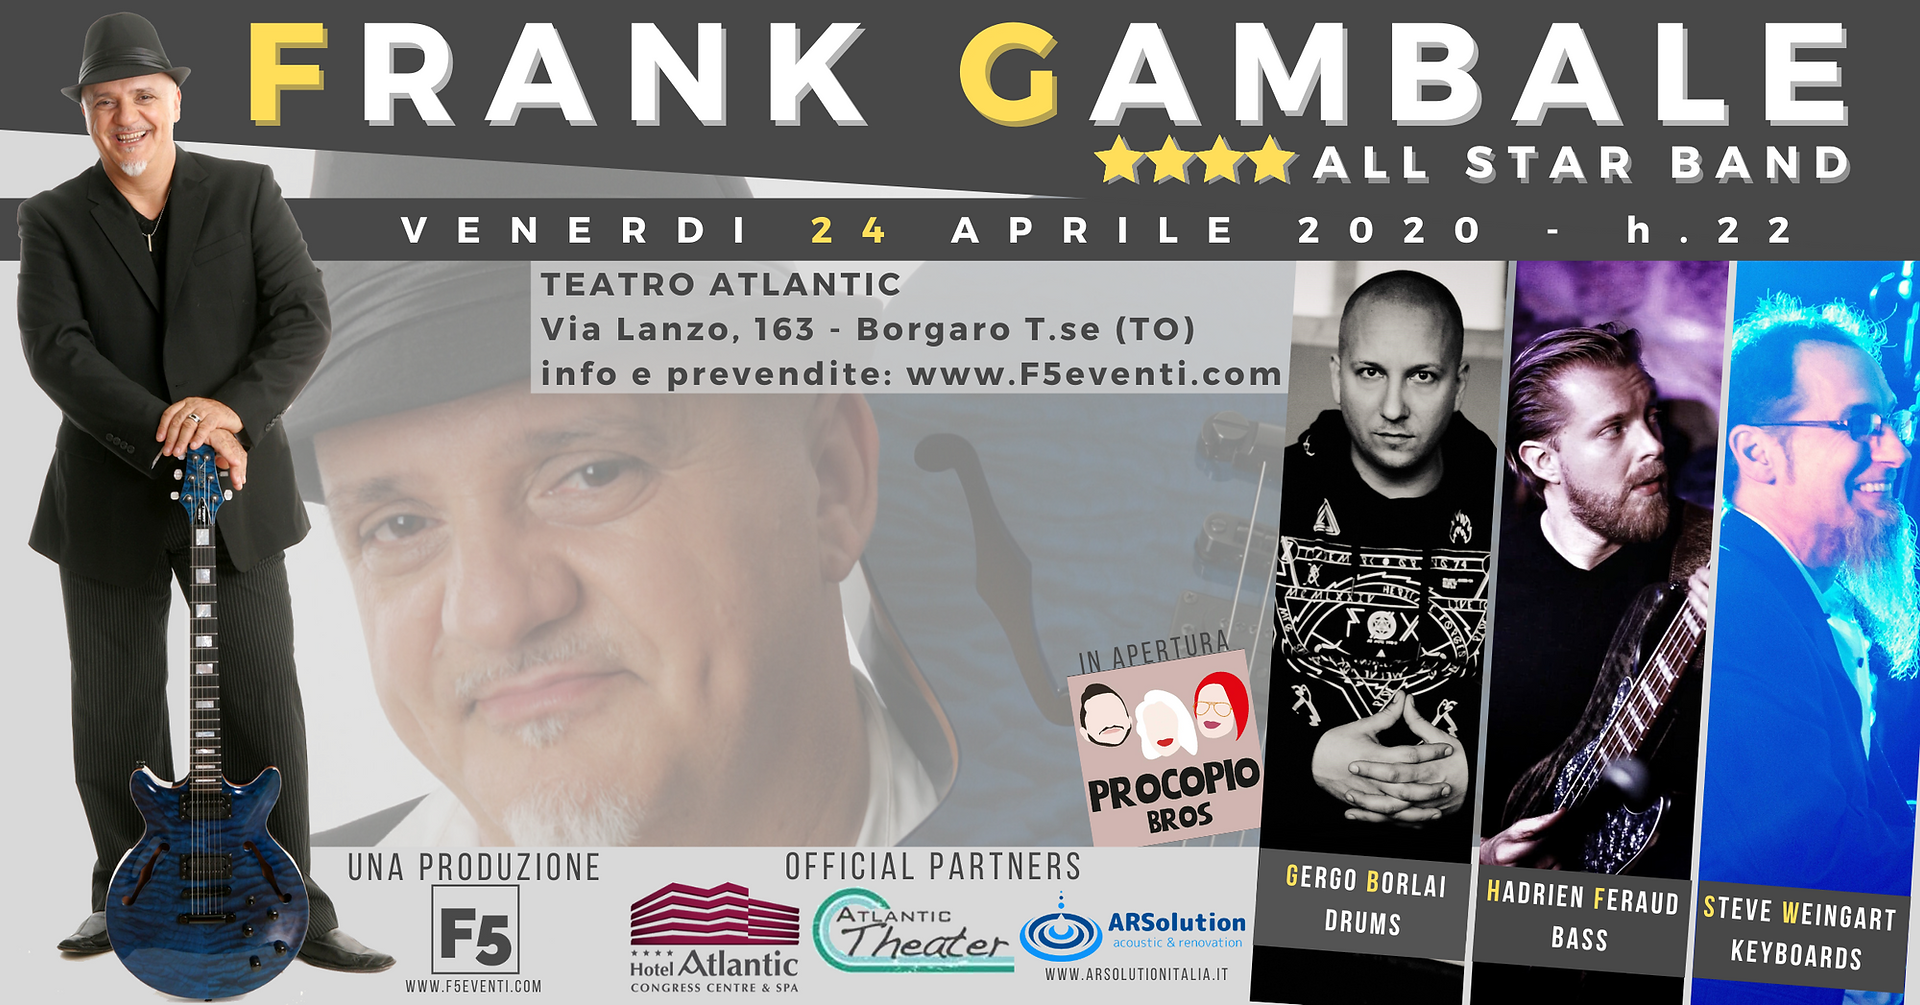 Frank Gambale All Star Band - 24 aprile 2020 al Teatro Atlantic di Borgaro (TO)